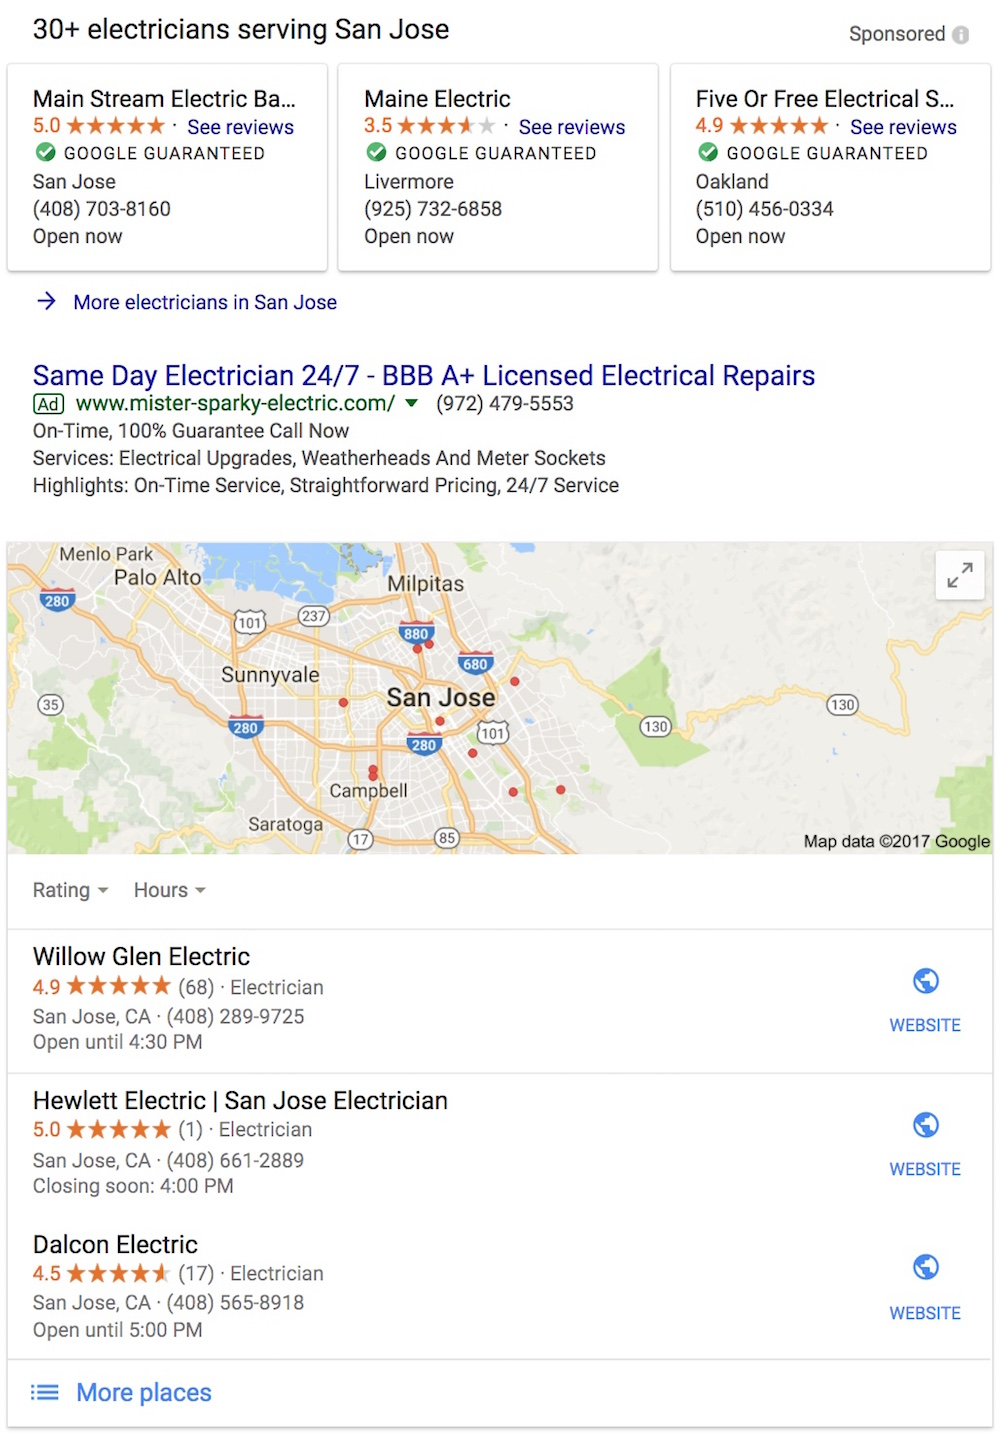 Google Local Services unit top of search (SERP) page